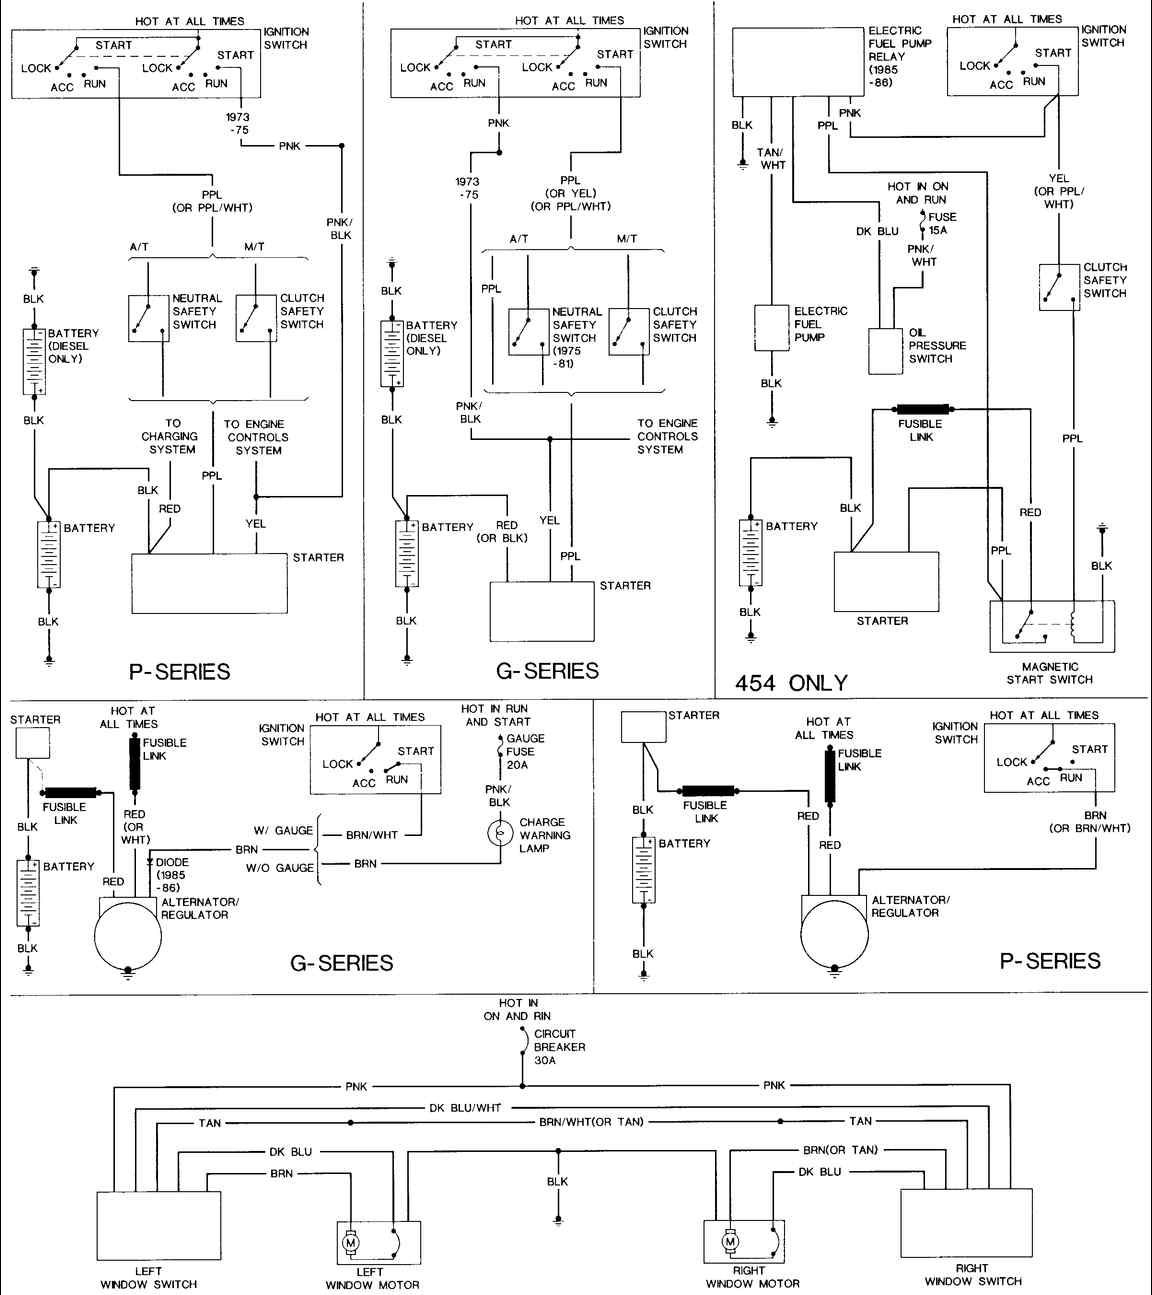 85 chevy truck wiring diagram 85 chevy van the steering column 1986 gmc ignition wiring diagram [ 1152 x 1295 Pixel ]